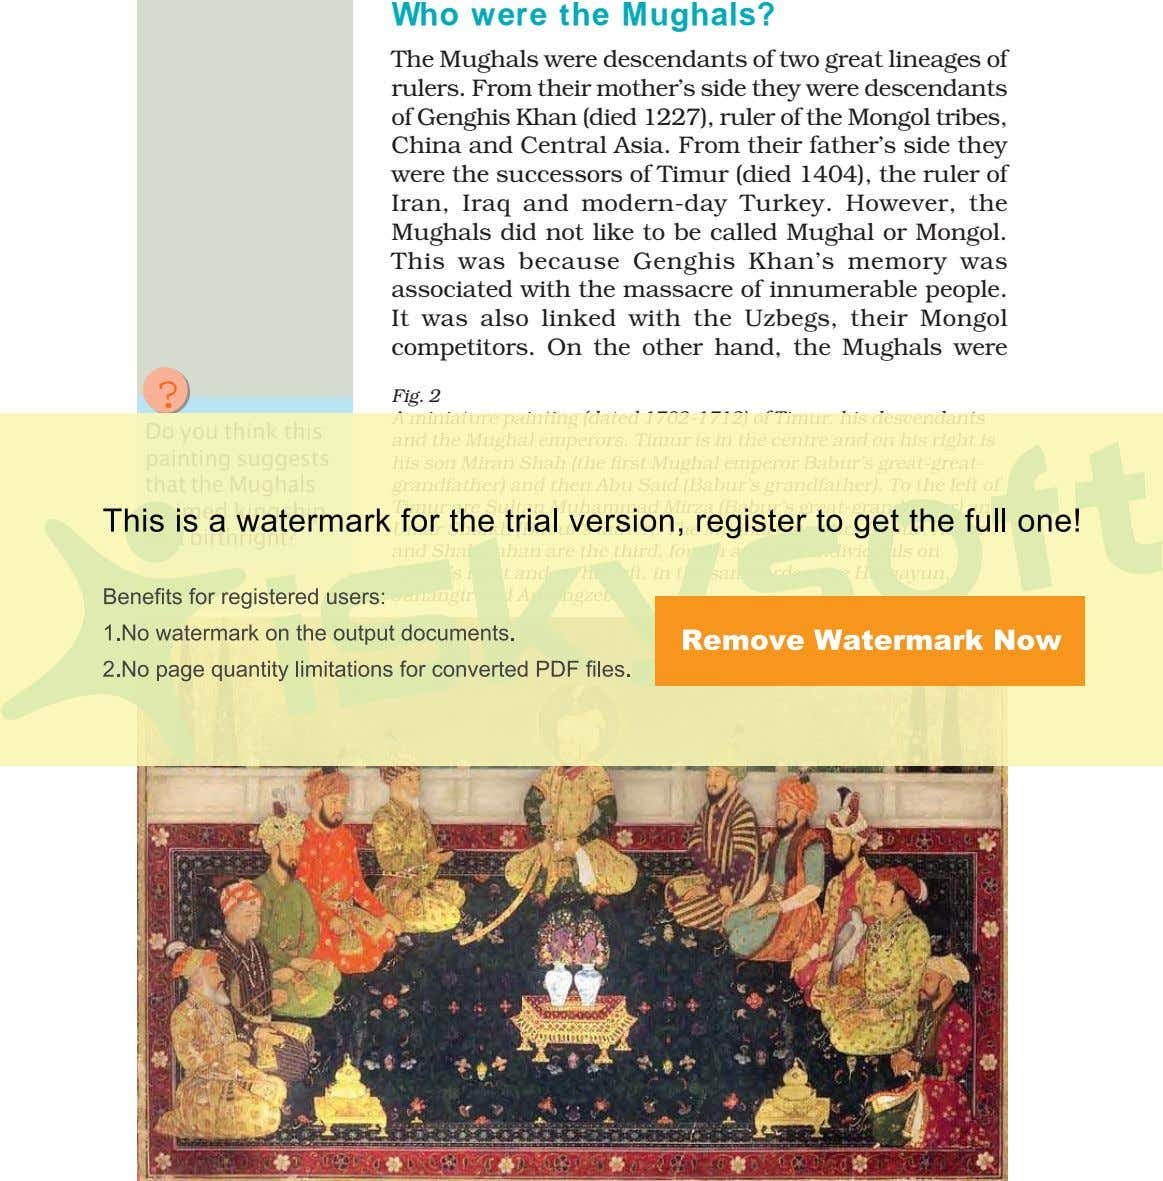 Who were the Mughals? The Mughals were descendants of two great lineages of rulers. From